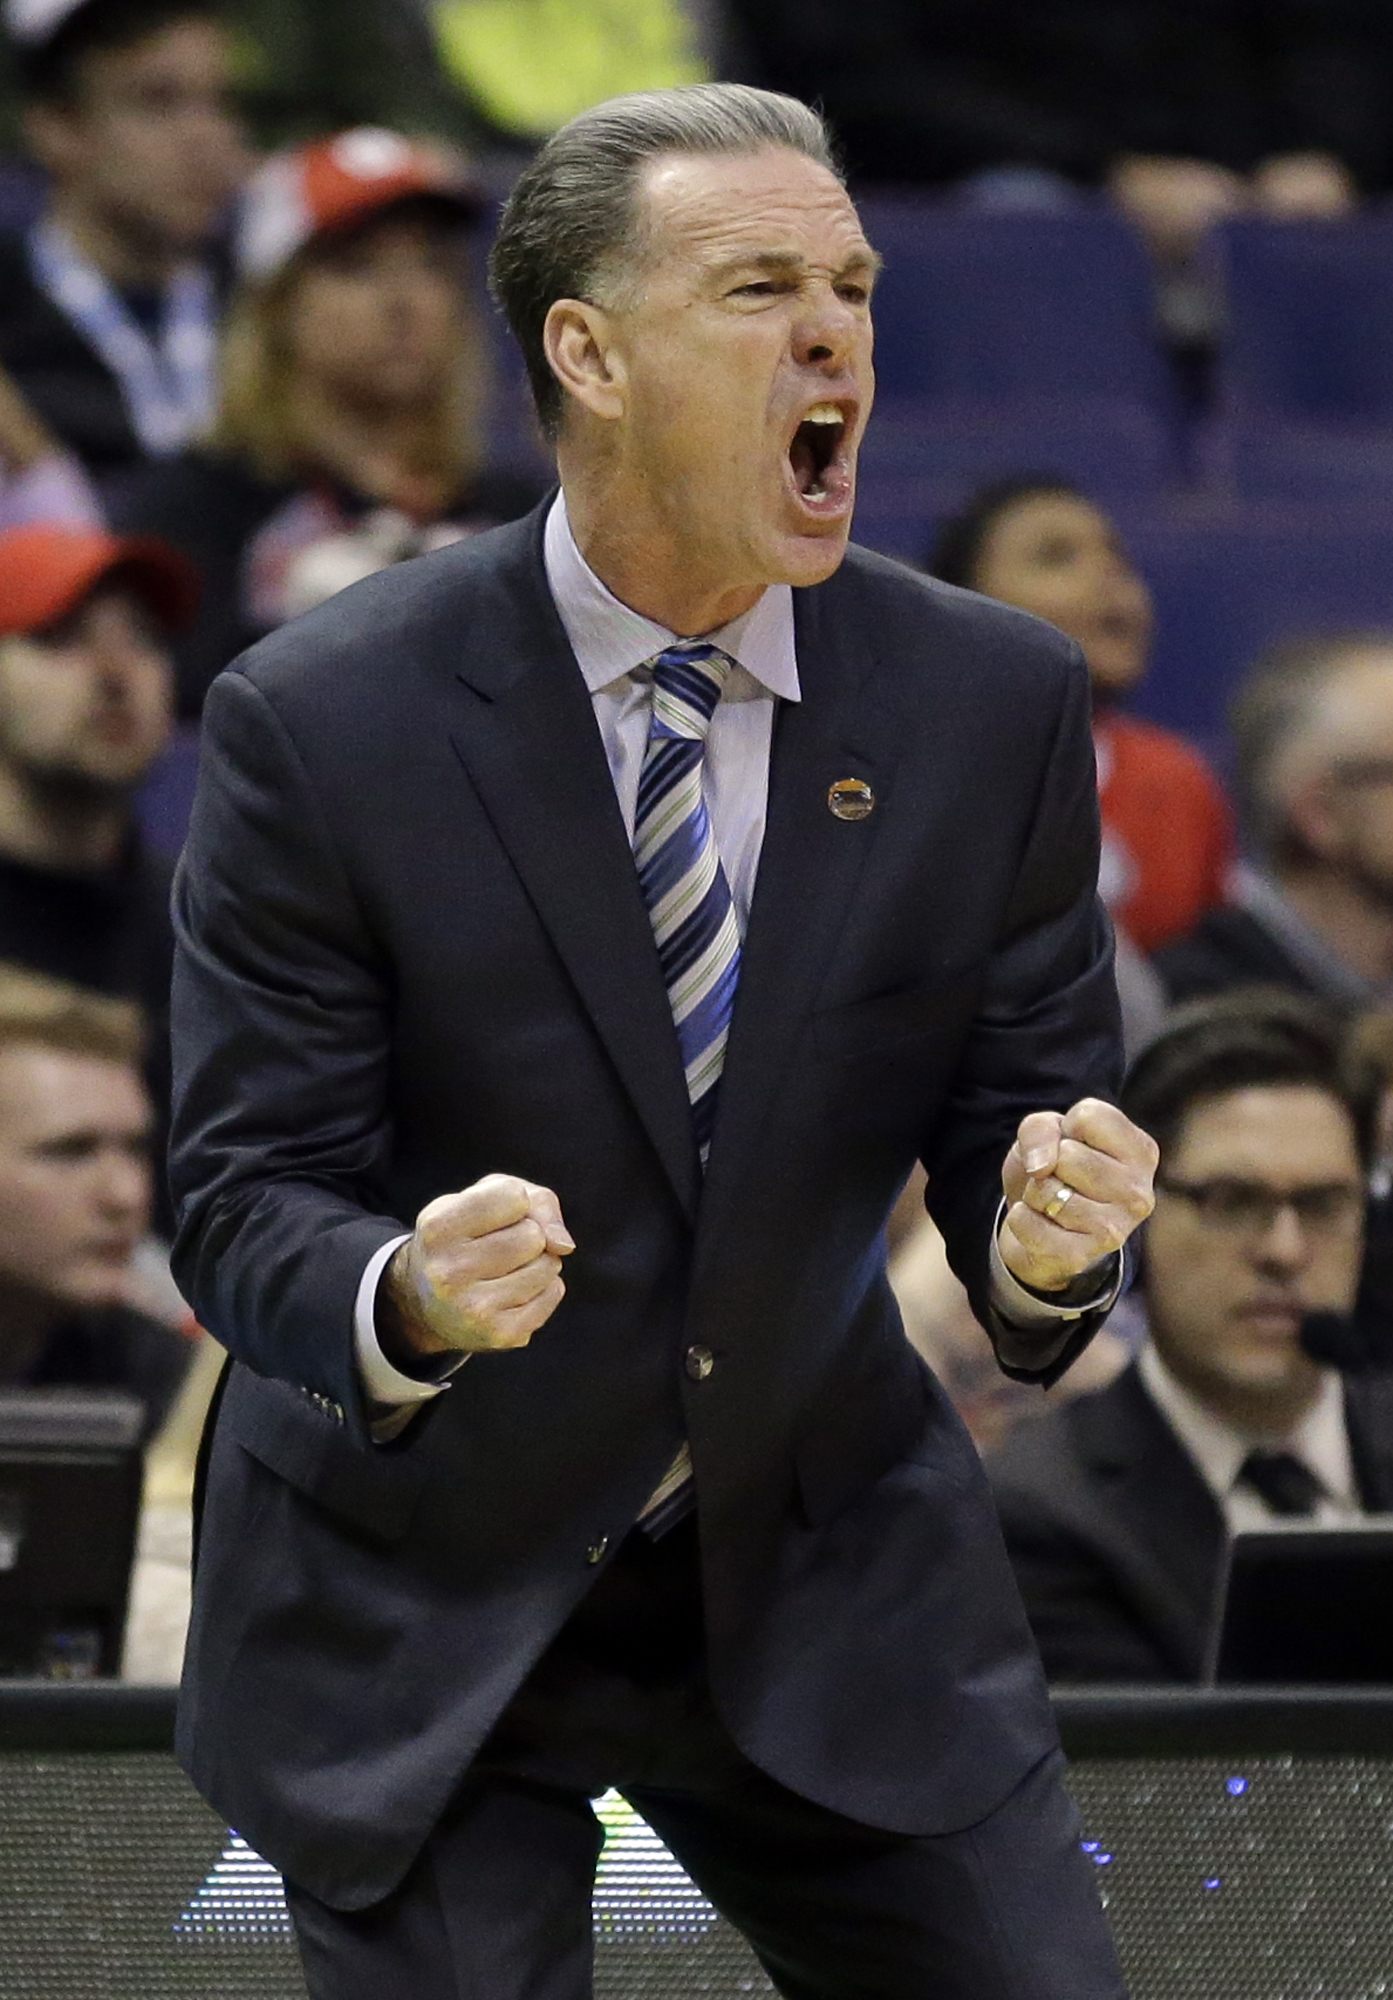 Pittsburgh coach Jamie Dixon yells on the sideline during the first half of a first-round men's college basketball game against Wisconsin in the NCAA tournament, Friday, March 18, 2016, in St. Louis. (AP Photo/Jeff Roberson)